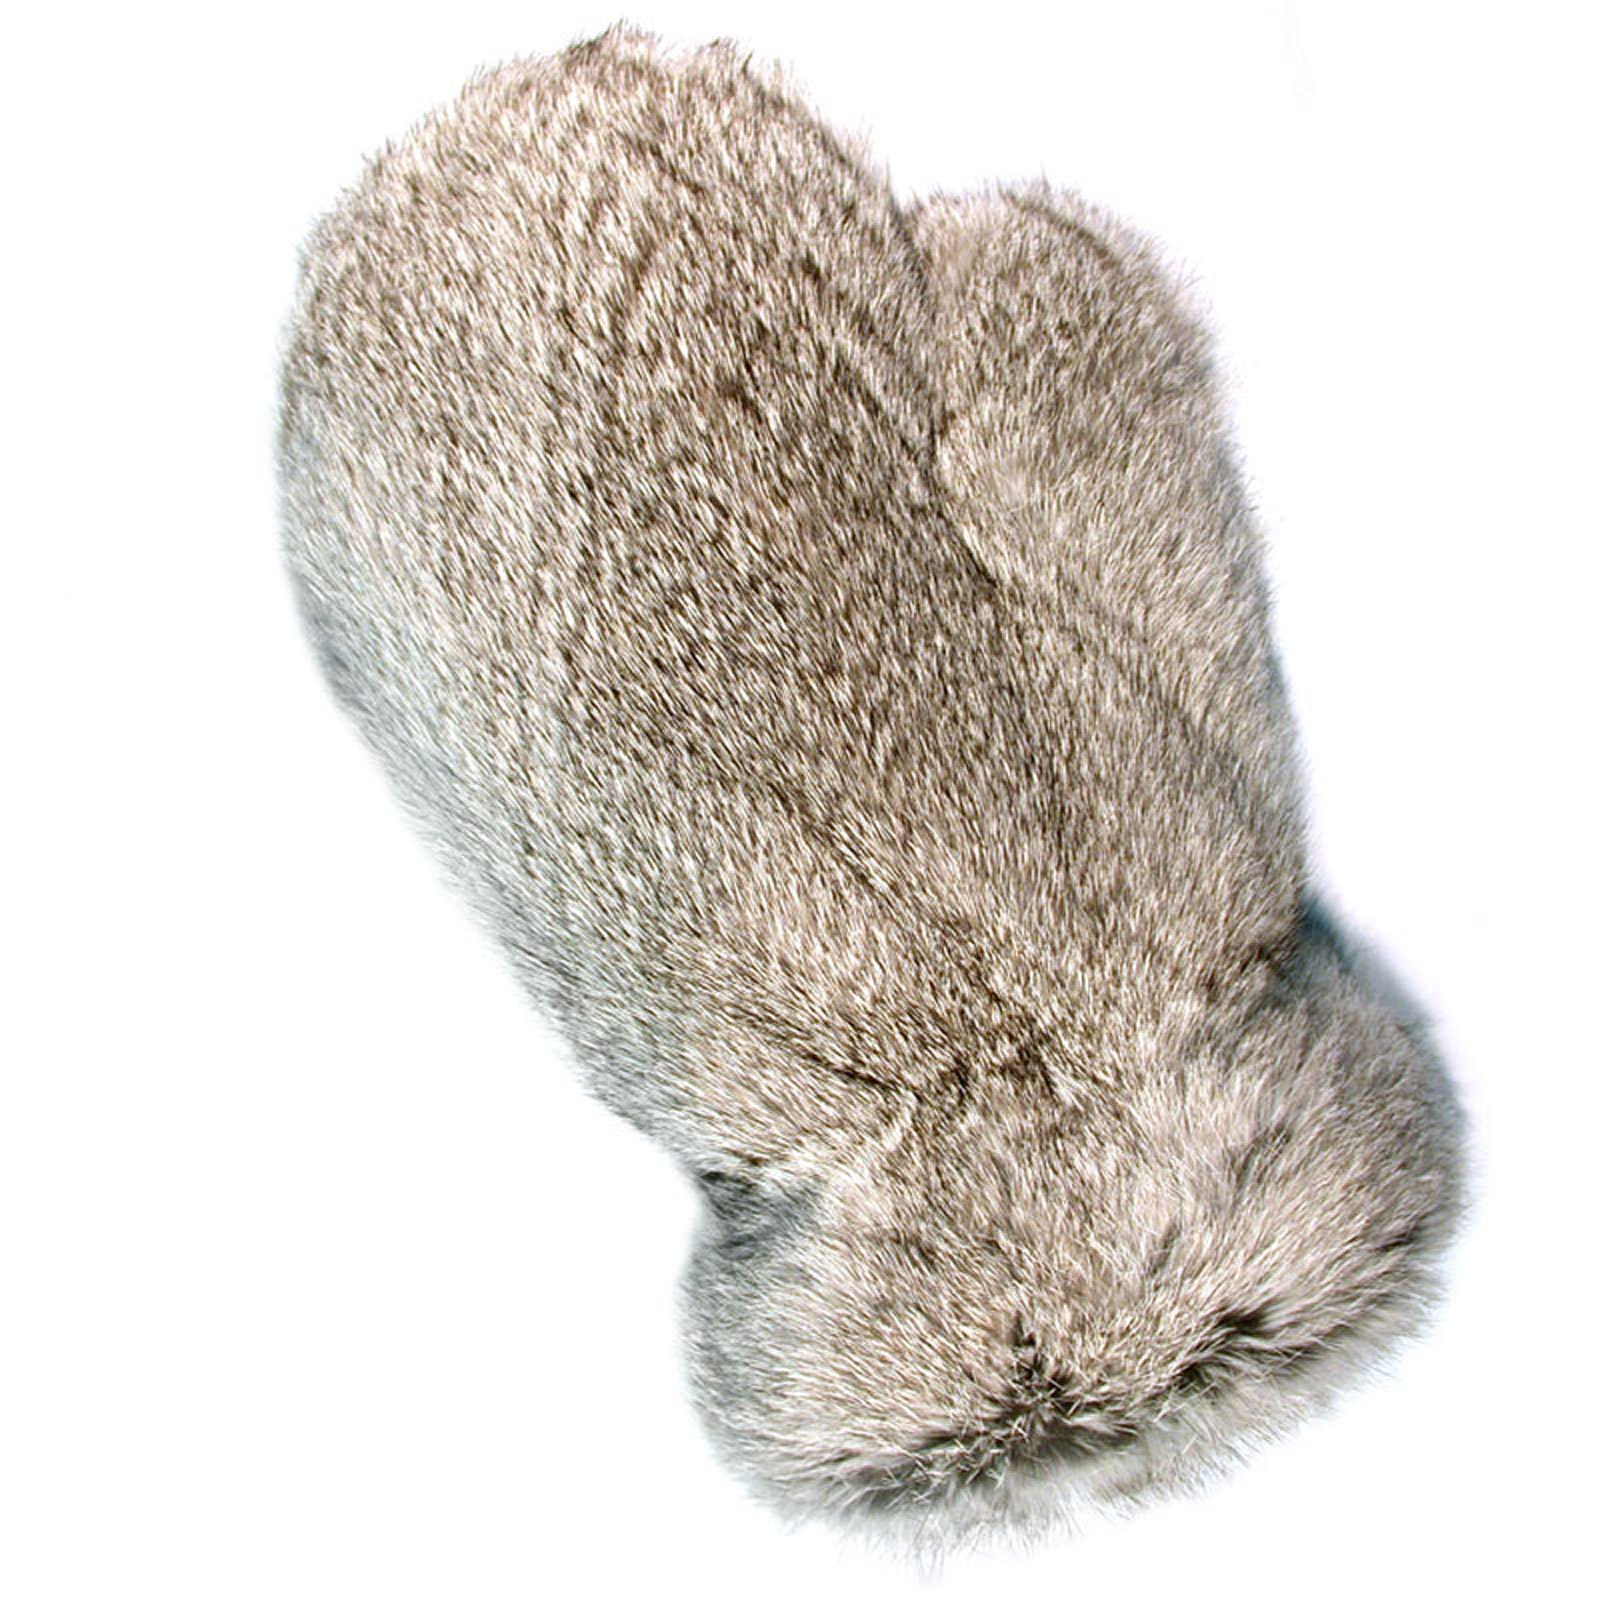 MinkgLove Rabbit Massage Glove, Fluffy & Airy Velvet Soft Feel, Speckled Gray Color, Hand Tailored, Unisex, One Size - Double Sided Fur